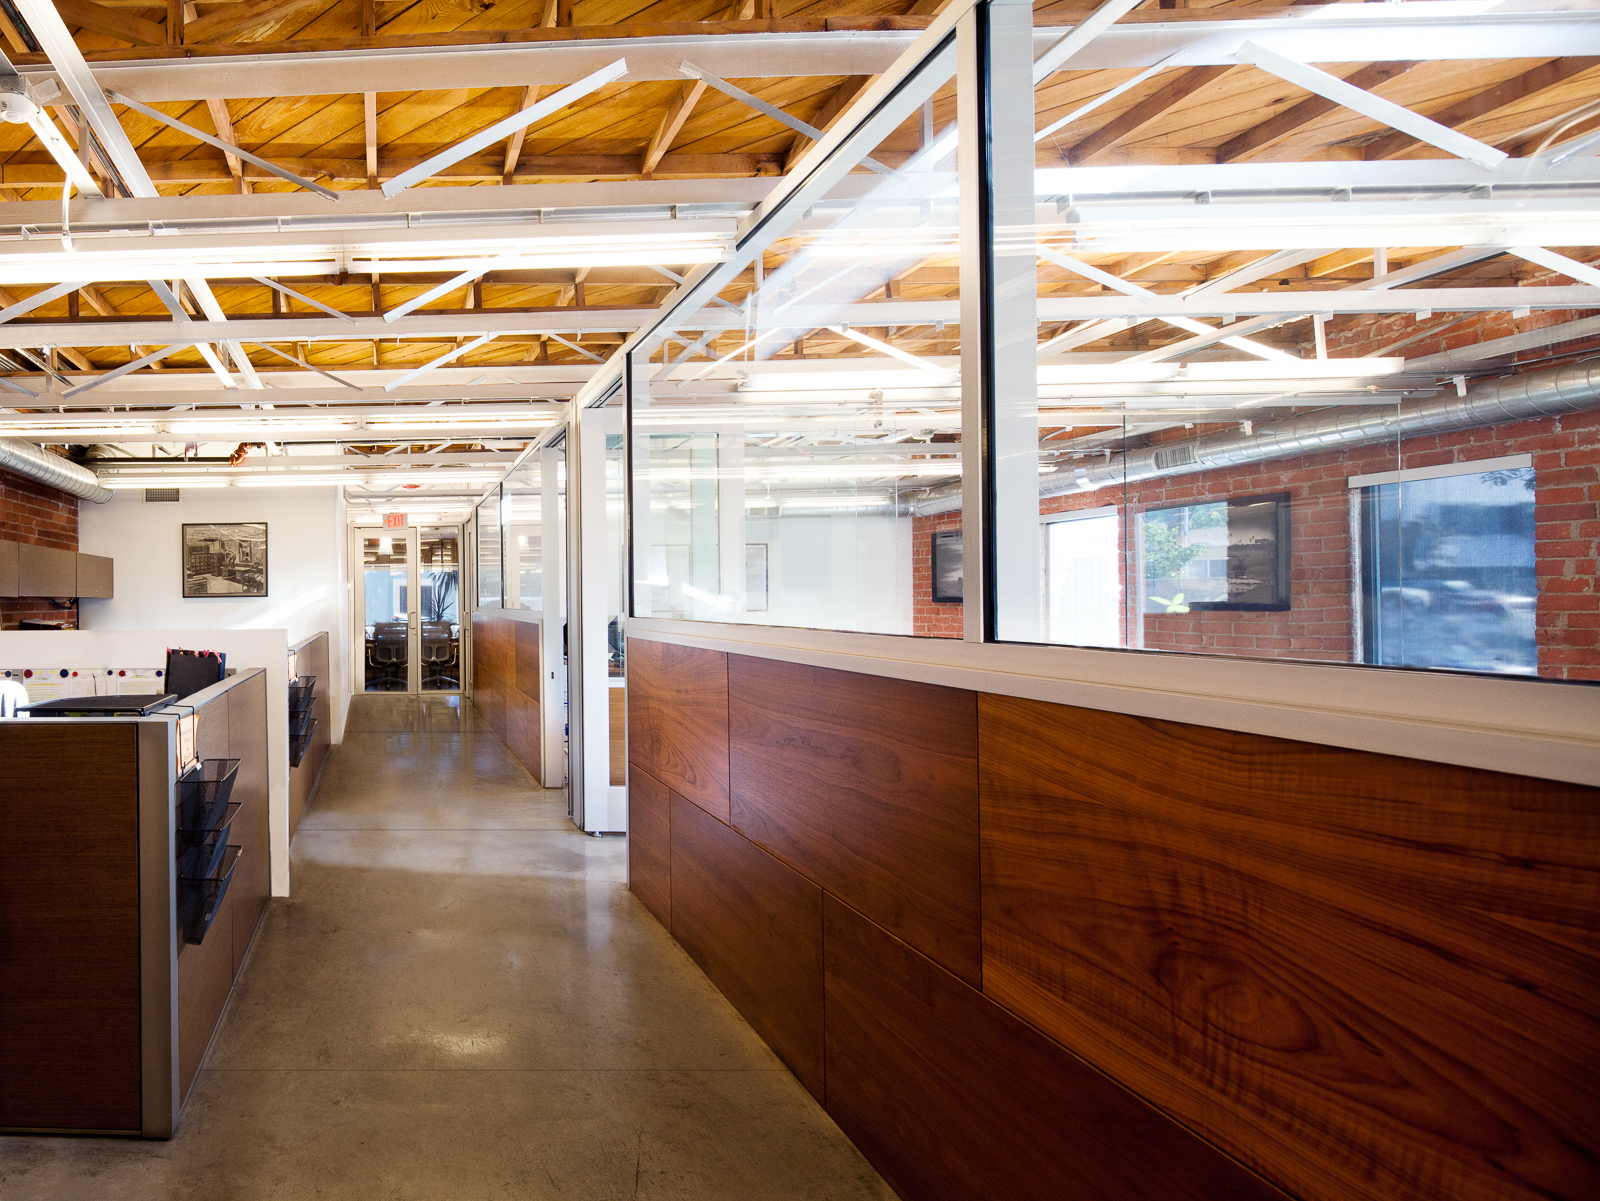 S.E.A.-Studio-Environmental-Architecture-David-Hertz-FAIA-Carpenter-Zuckerman-Rowley-Santa-Monica-adaptive-reuse-sustainable-regenerative-restorative-green-design-warehouse-truss-upcycle-recycle-law-office-commercial-building-life-cycle-signage-3.jpg